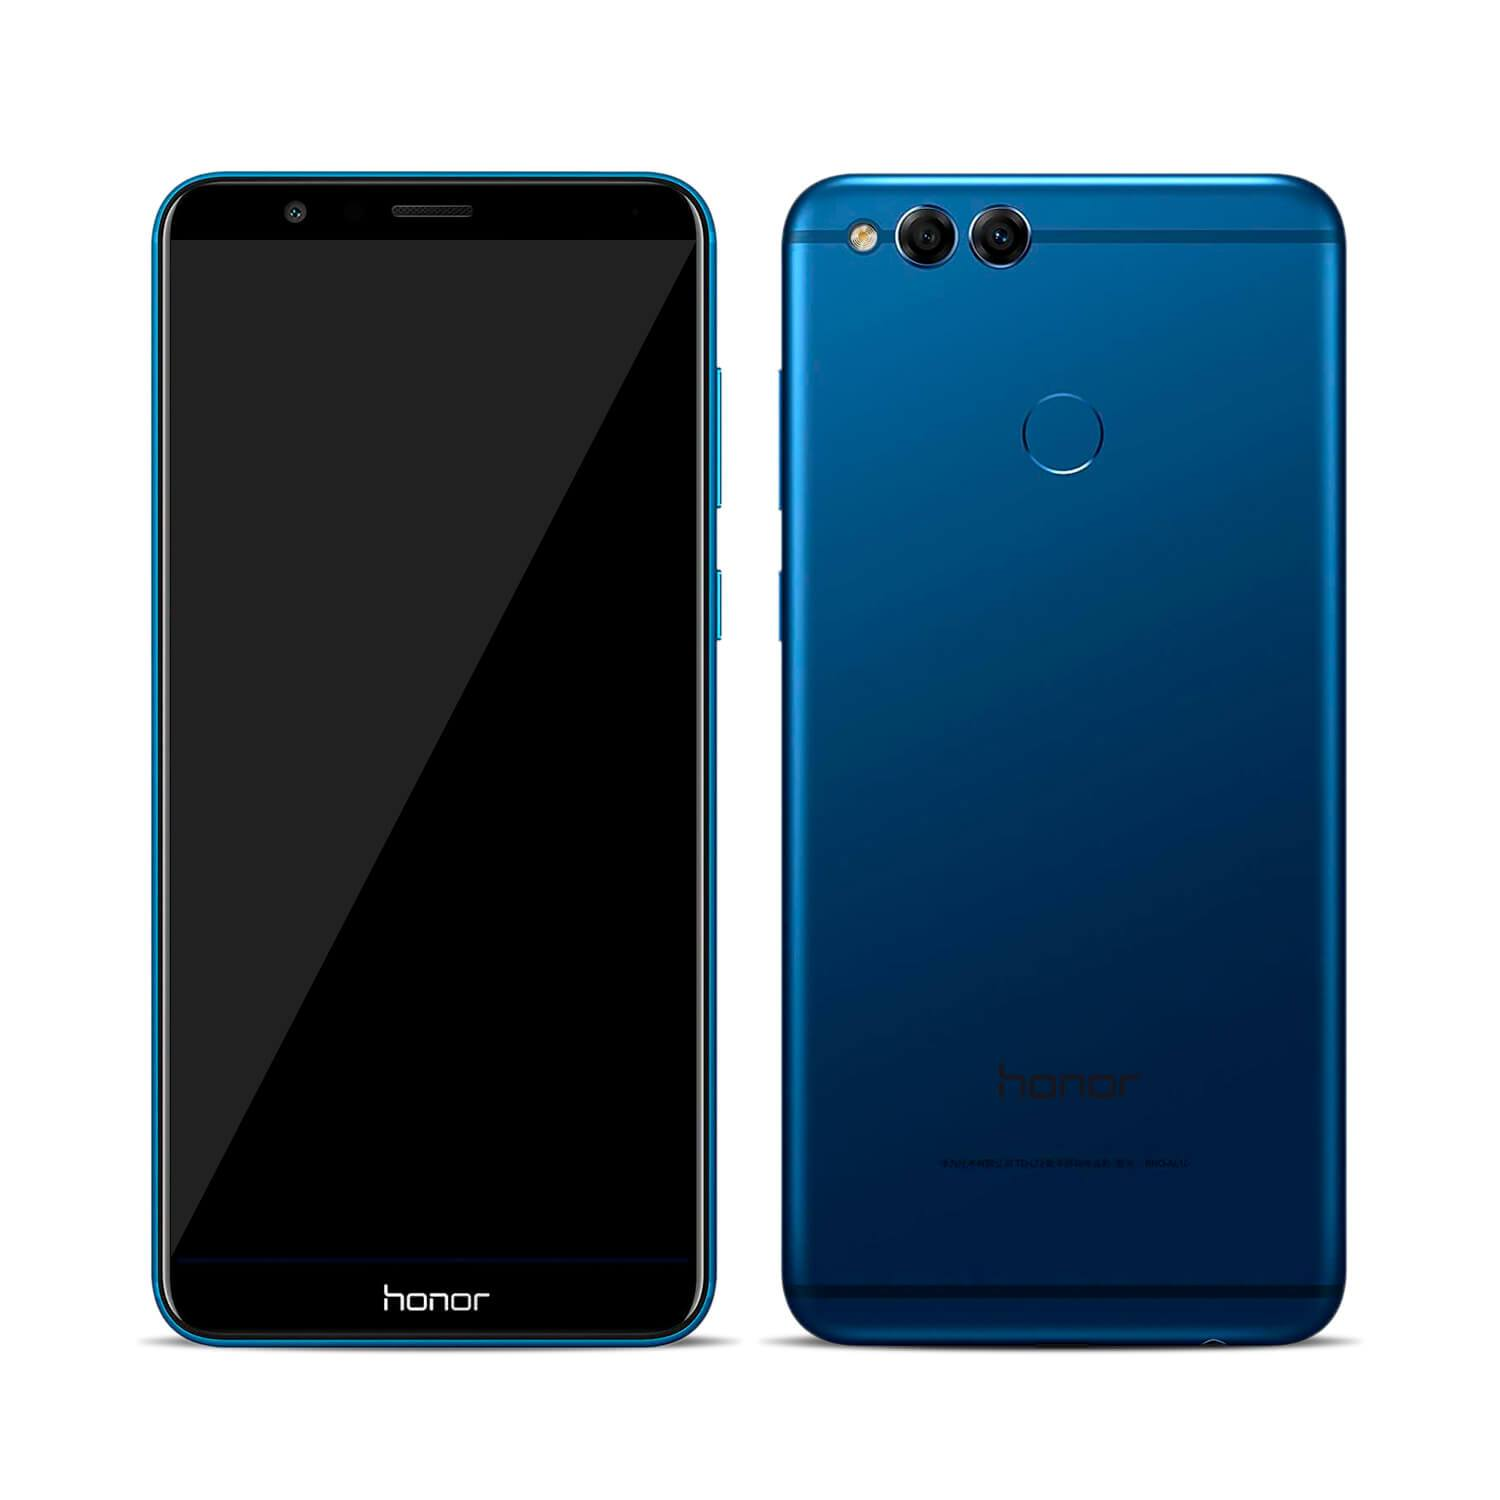 The Honor 7X